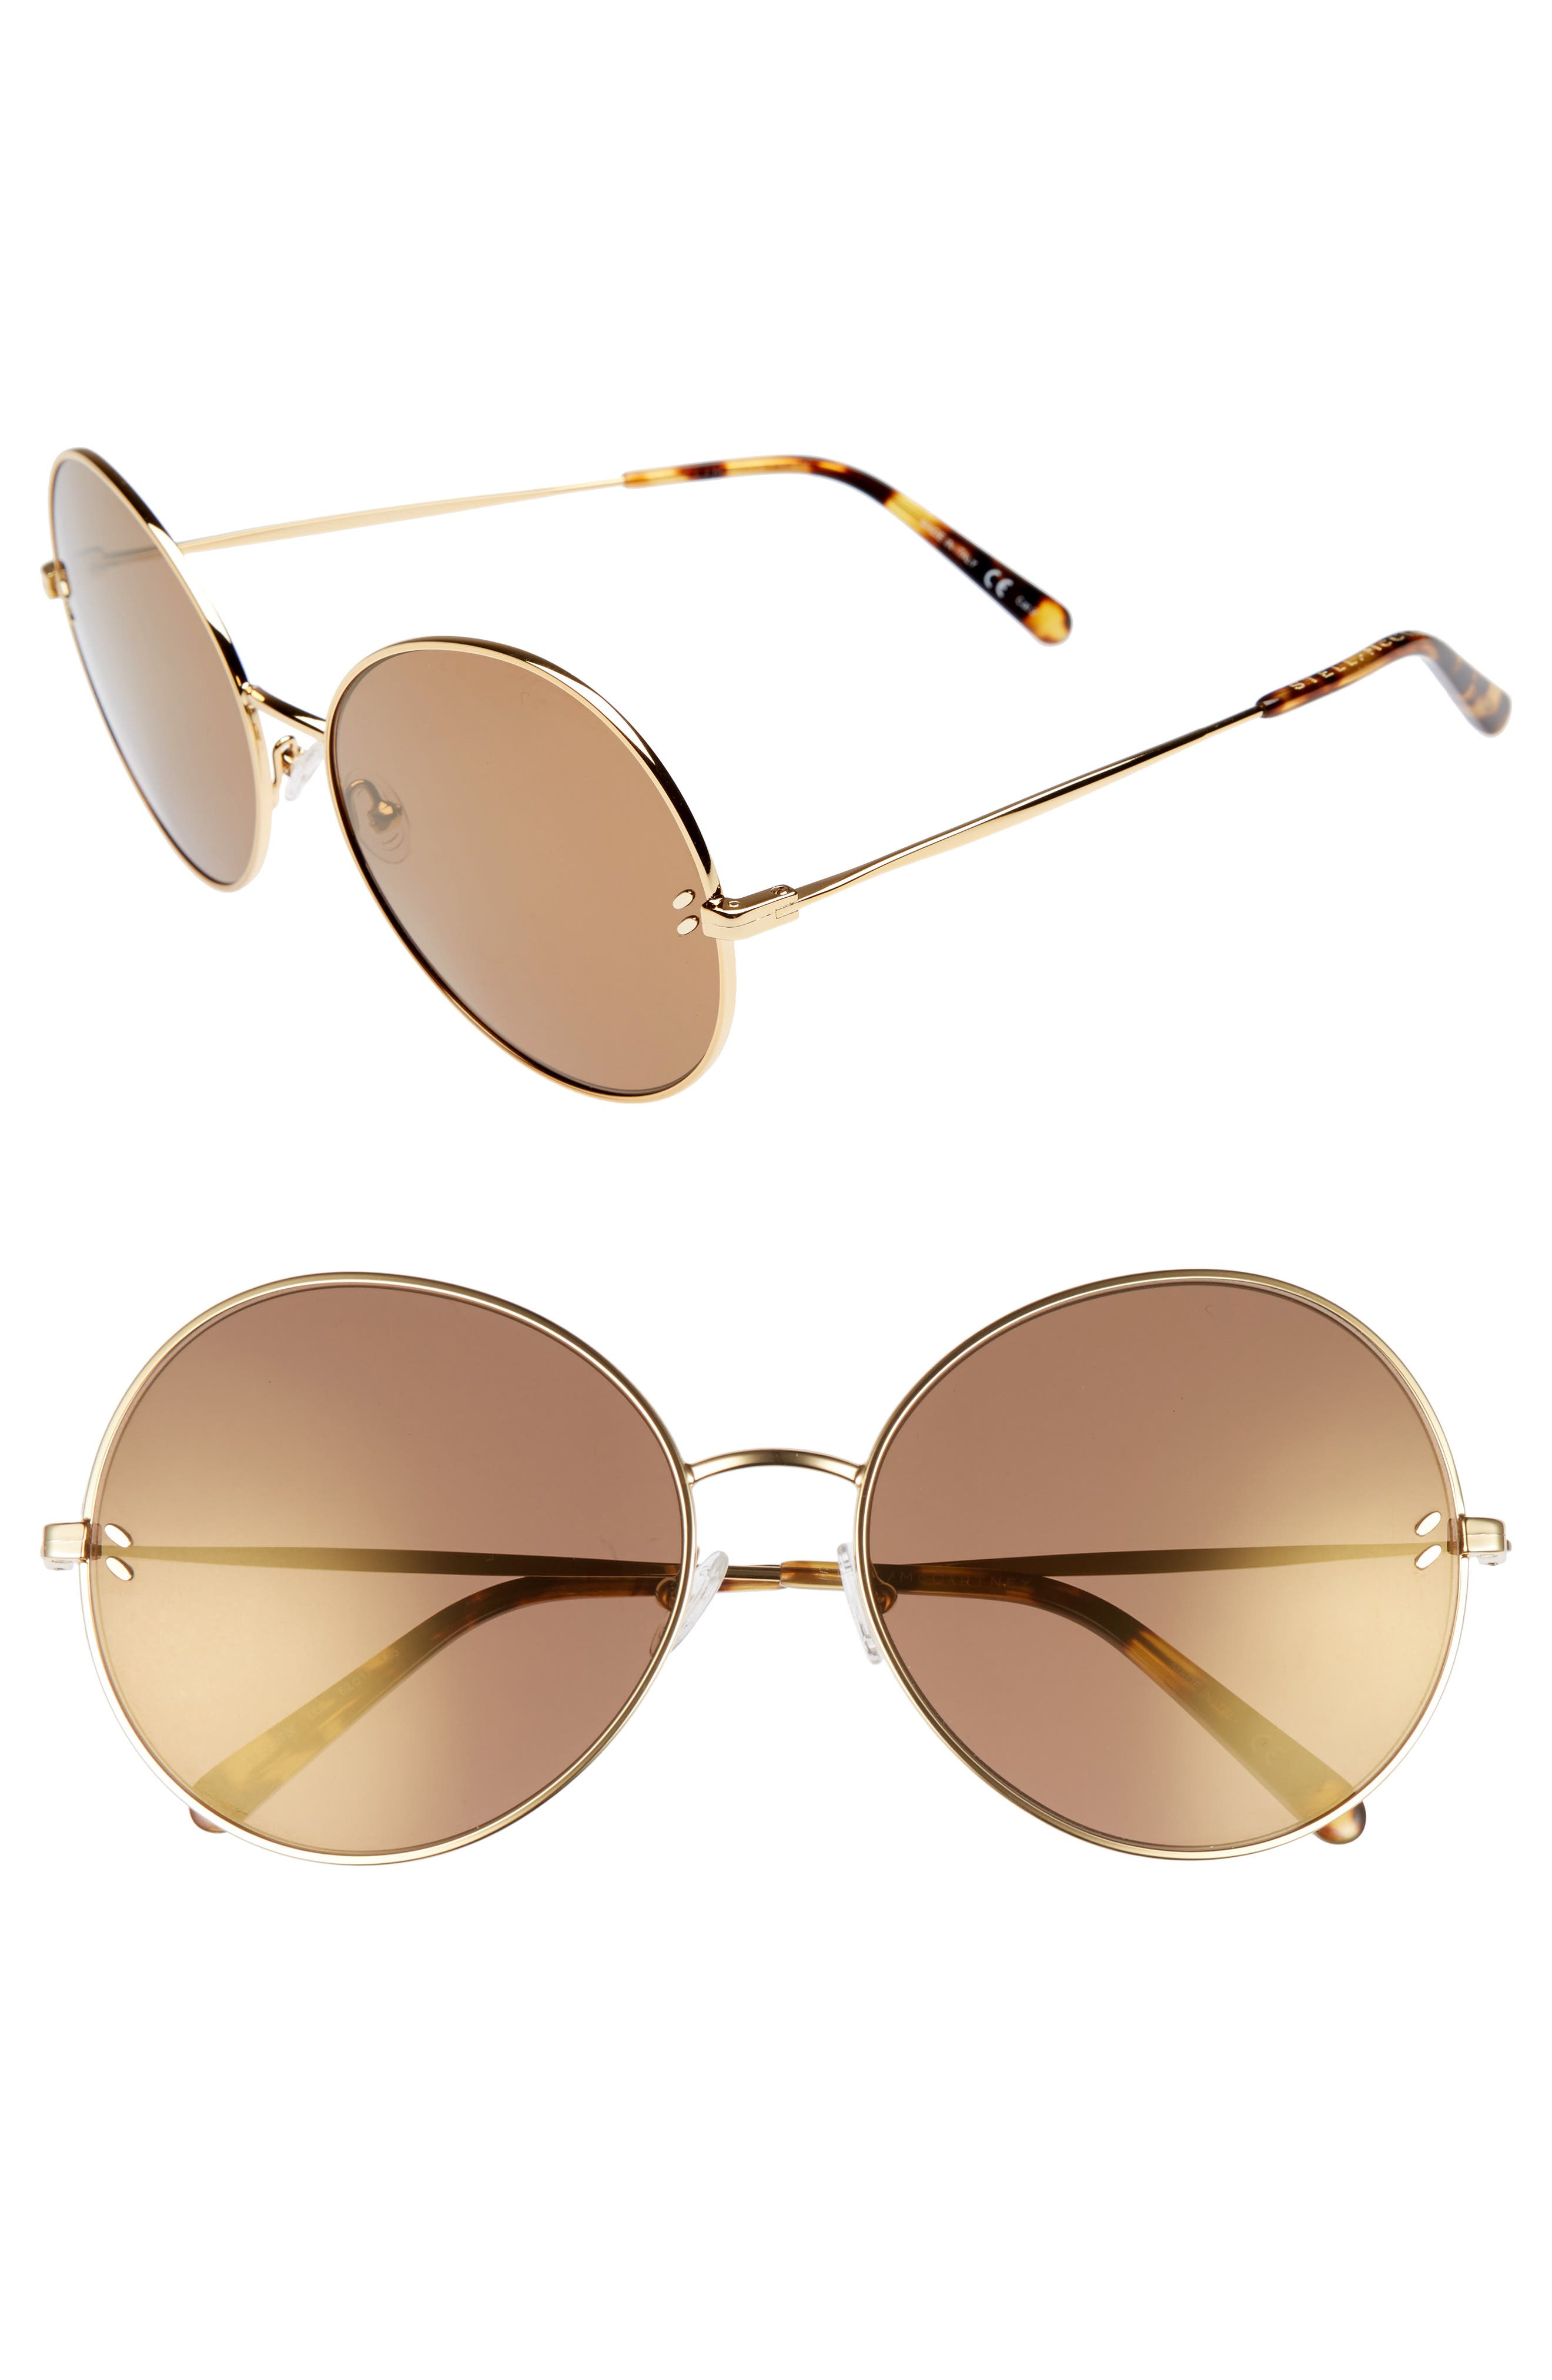 62mm Round Sunglasses,                         Main,                         color,